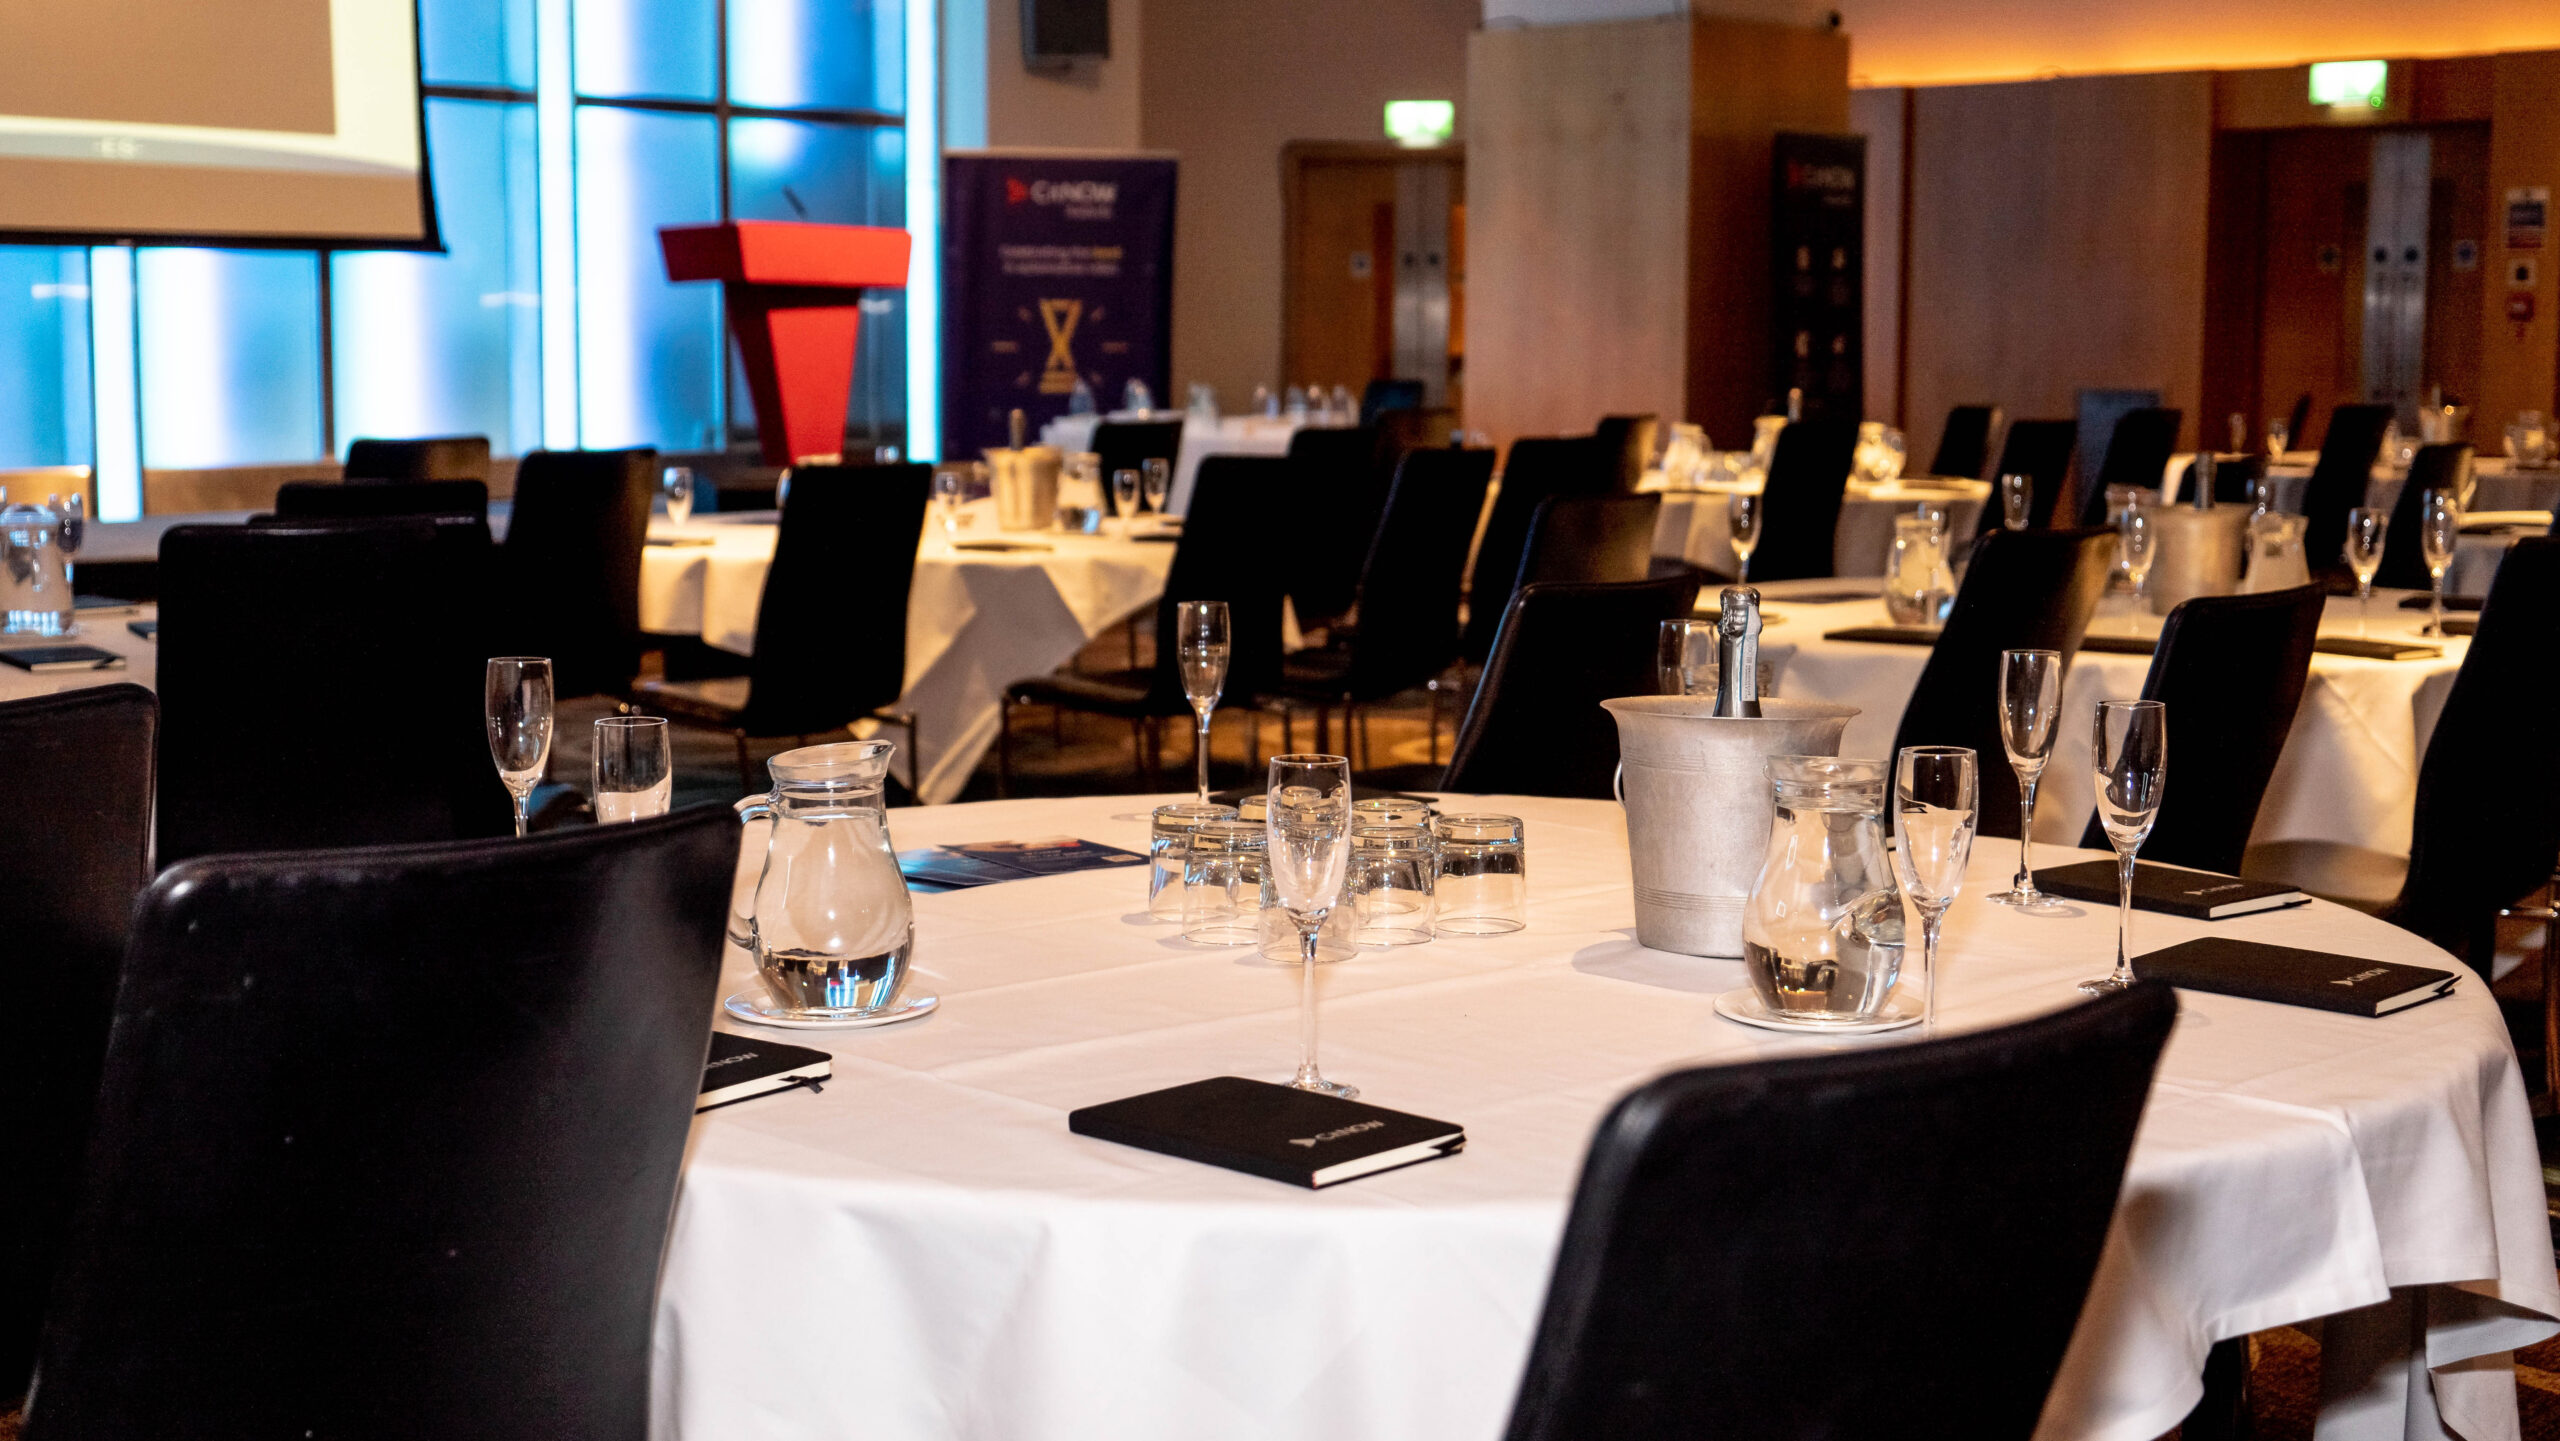 Event room before guests arrive